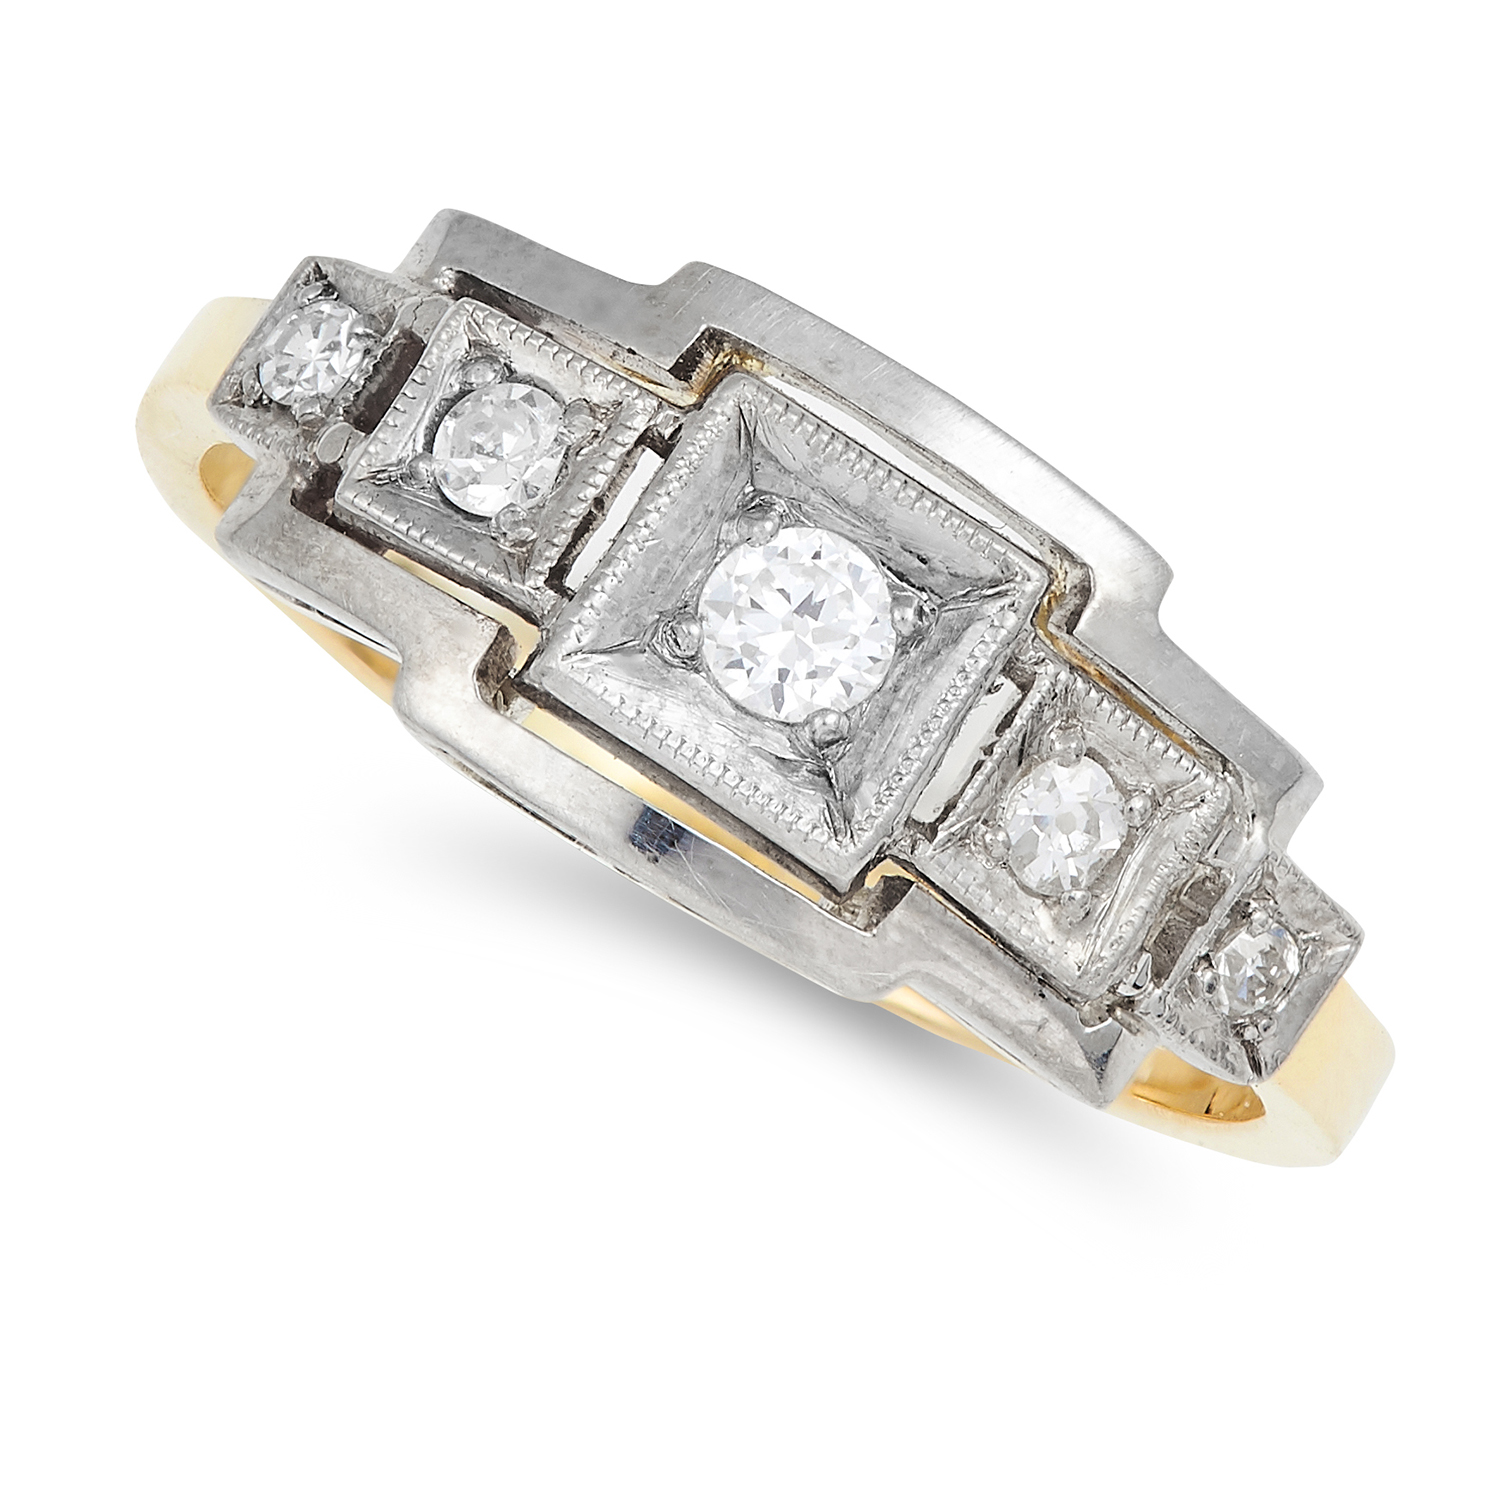 DIAMOND DRESS RING in Art Deco style set with round cut diamonds, size M / 6, 2.7g.